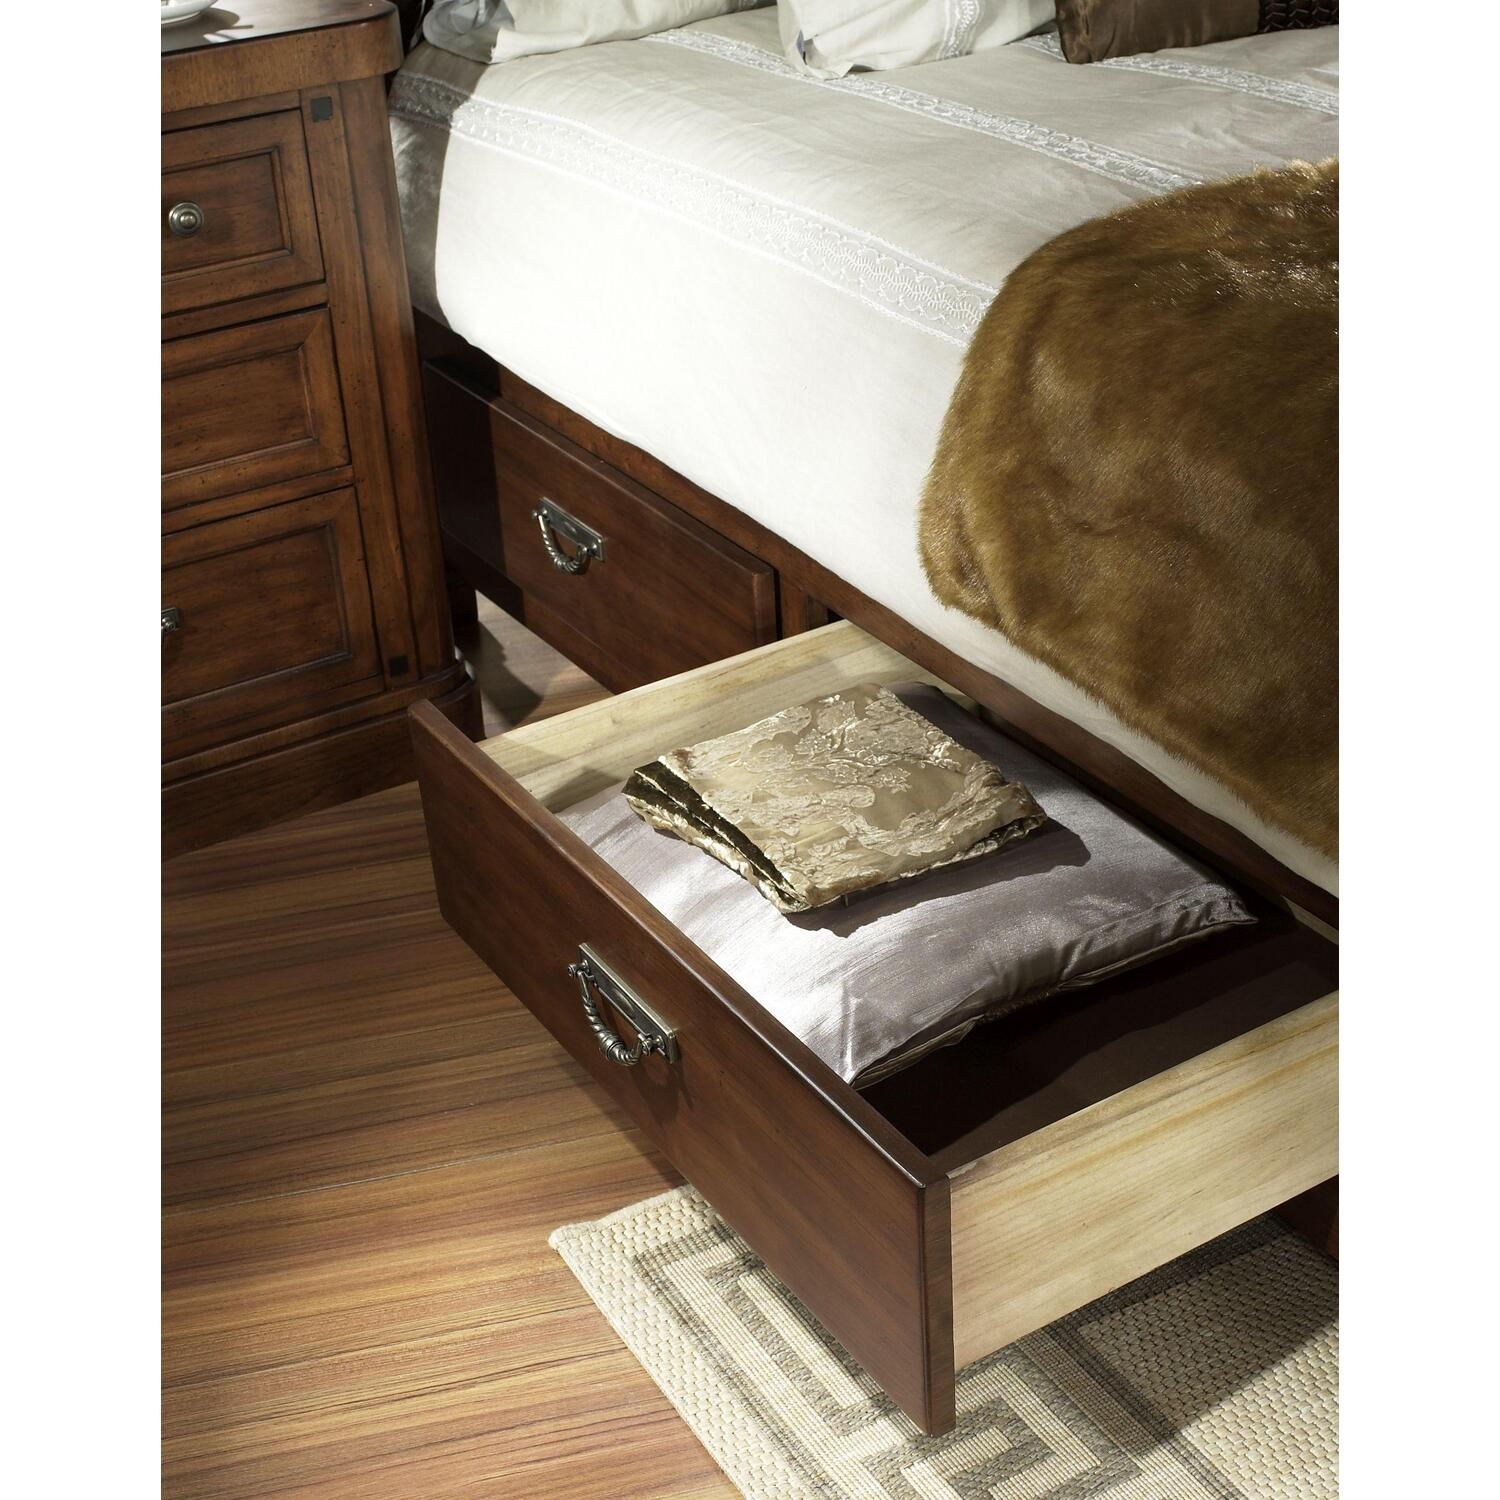 Somerton barrington california king panel bed with drawers by oj commerce p420 52dc 1 - Cal king bed with drawers ...